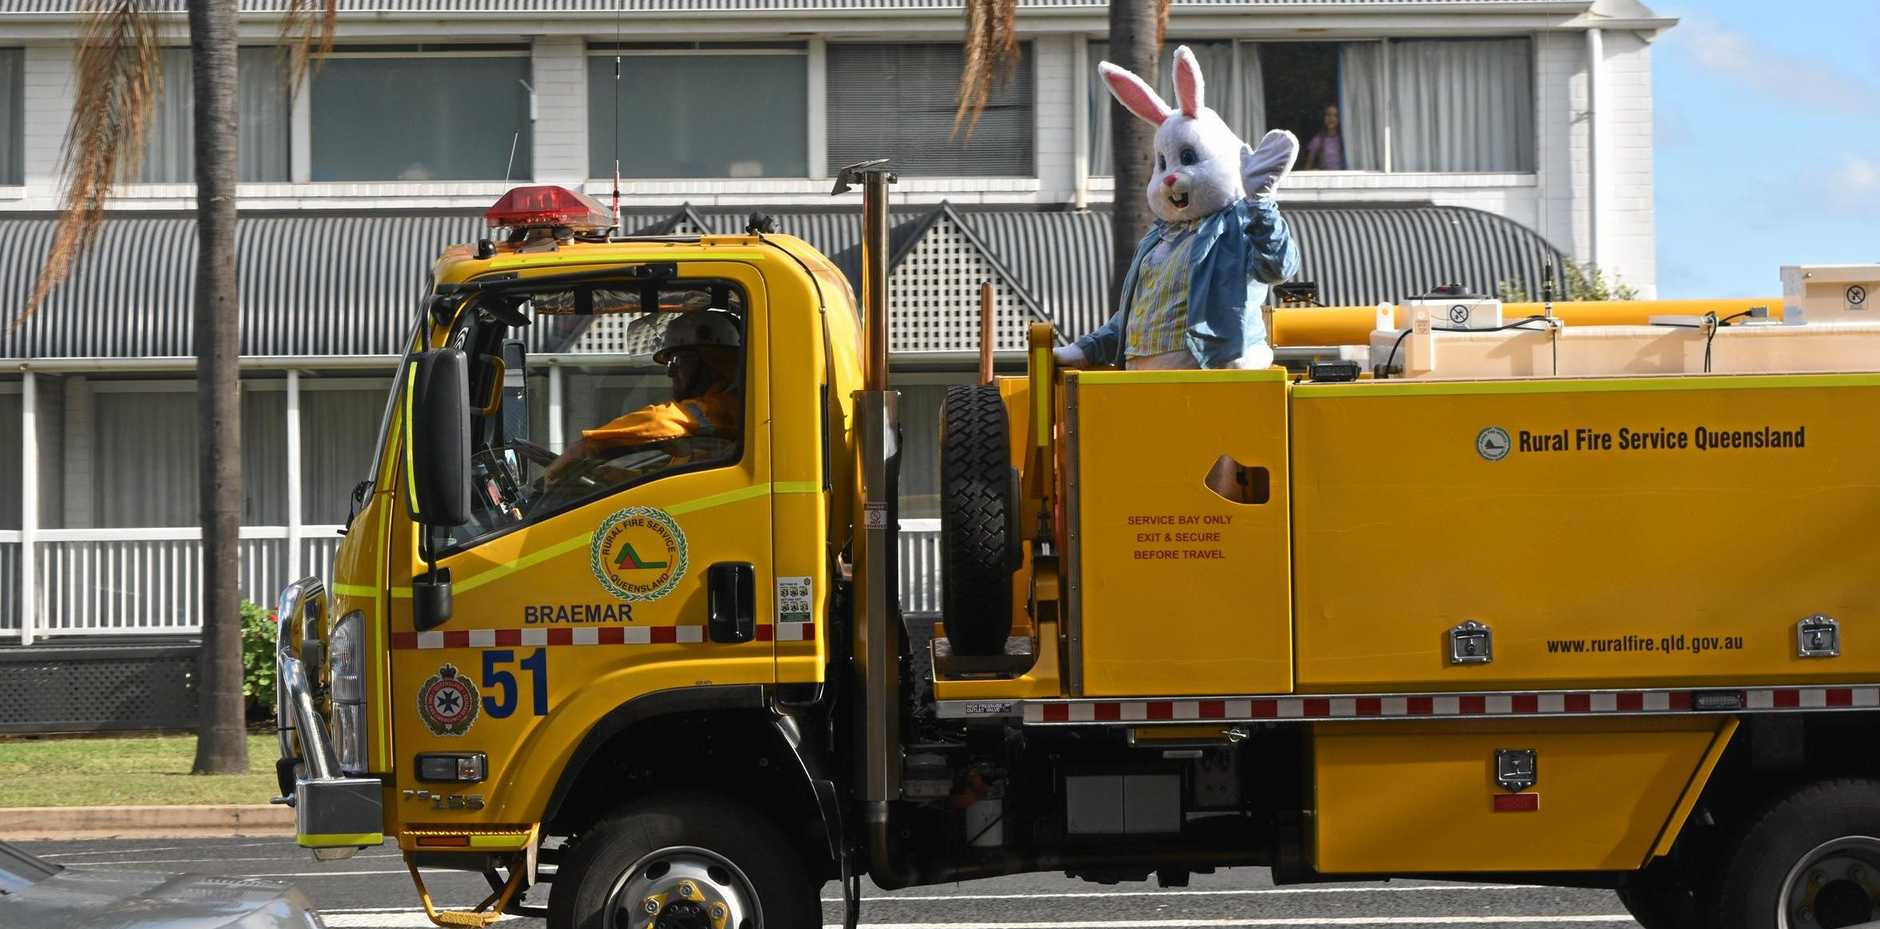 Our very own Easter Bunny came to Thomas Jack Park with his friends from the Braemar Rural Fire Brigade.